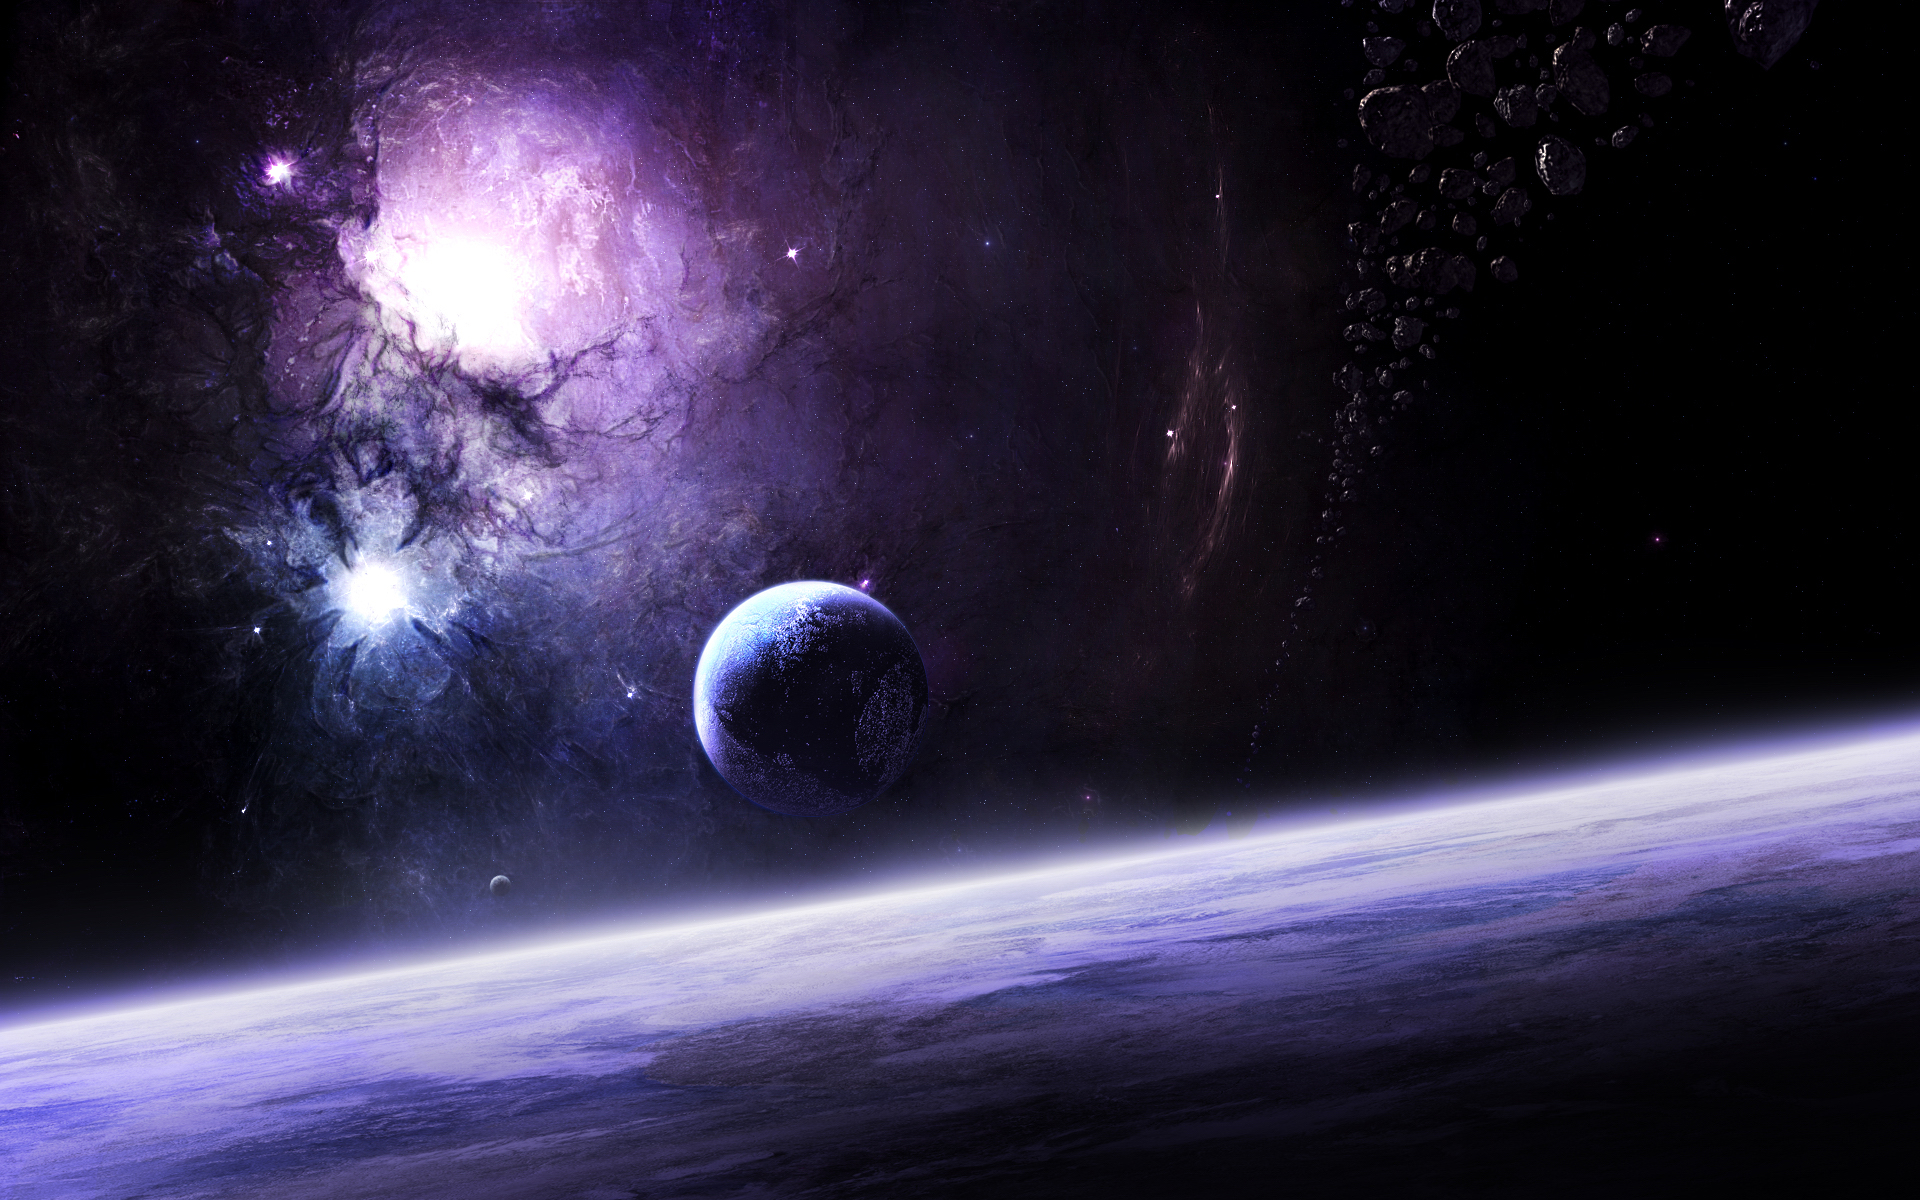 outer space planets - HD1680×1050